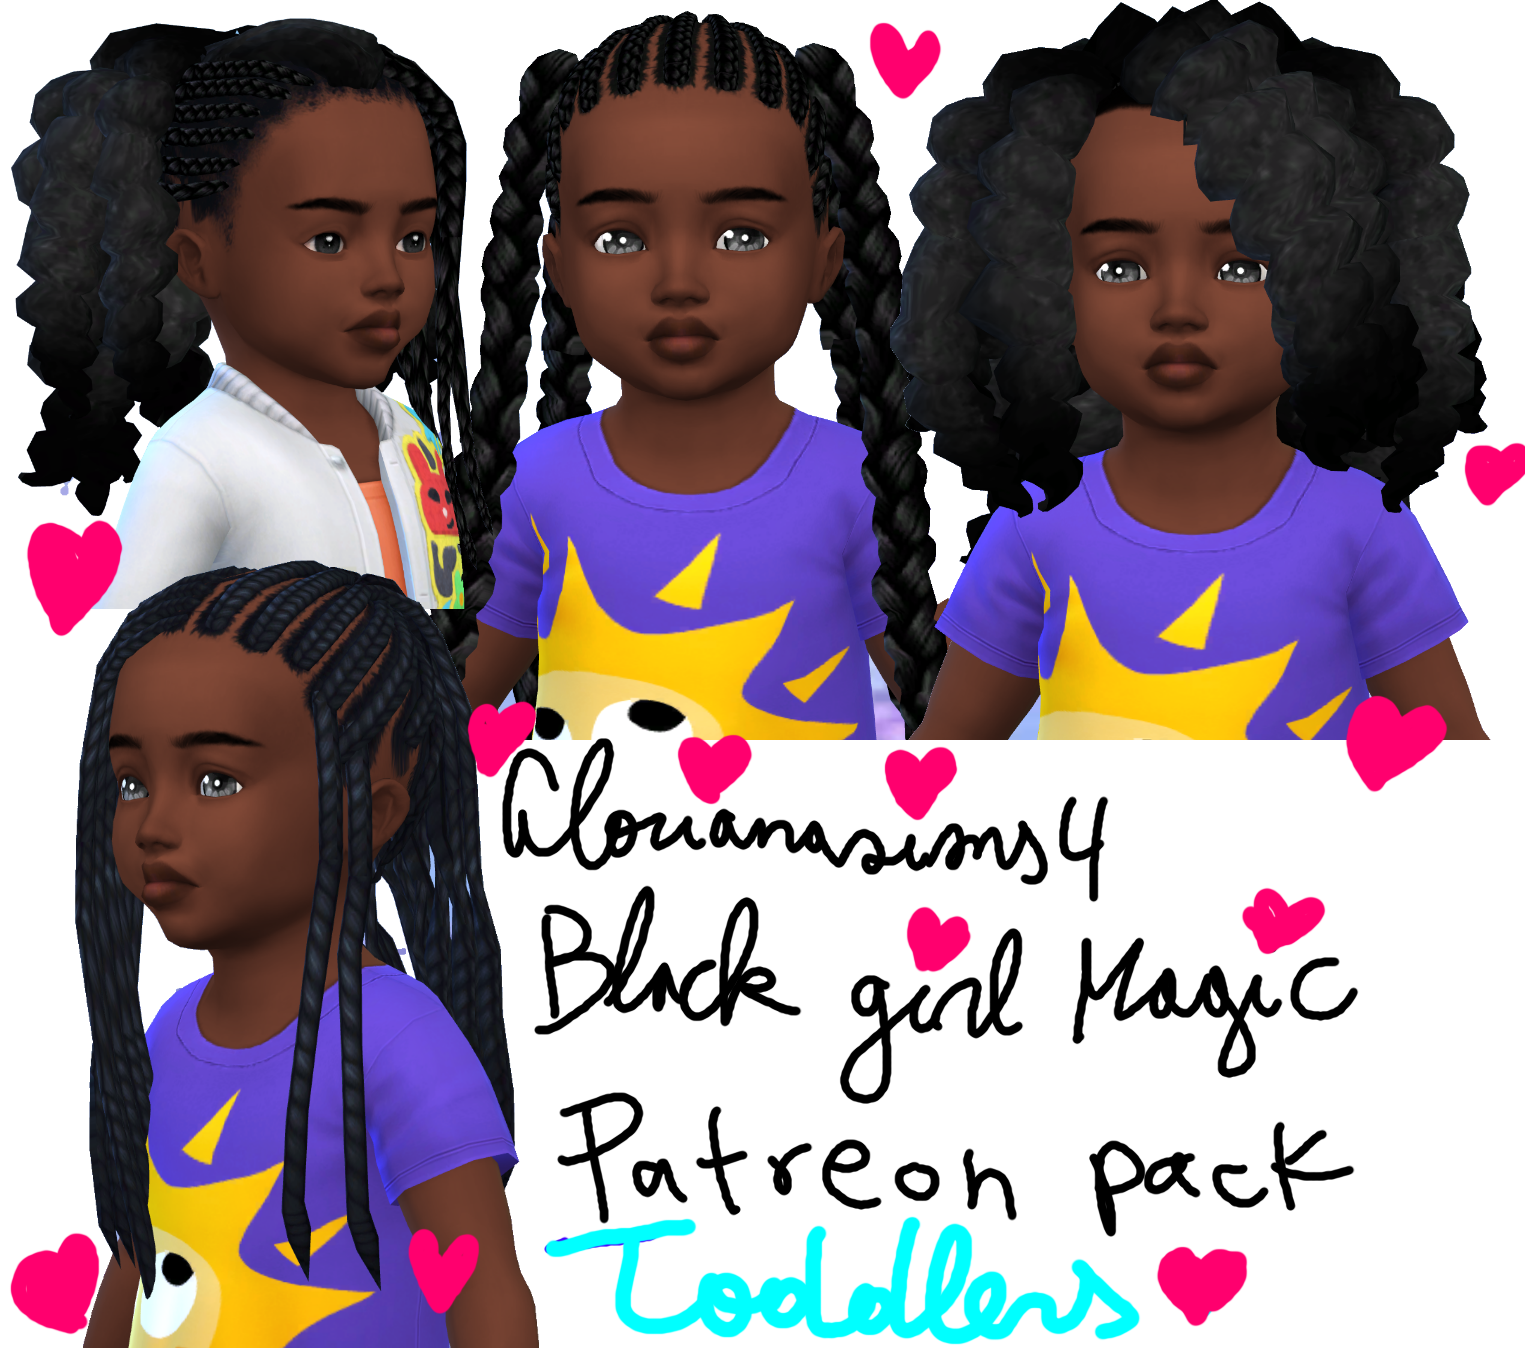 Little Black Girl Magic Glorianasims4 On Patreon In 2020 Afro Hair Sims 4 Cc Sims 4 Afro Hair Sims 4 Black Hair